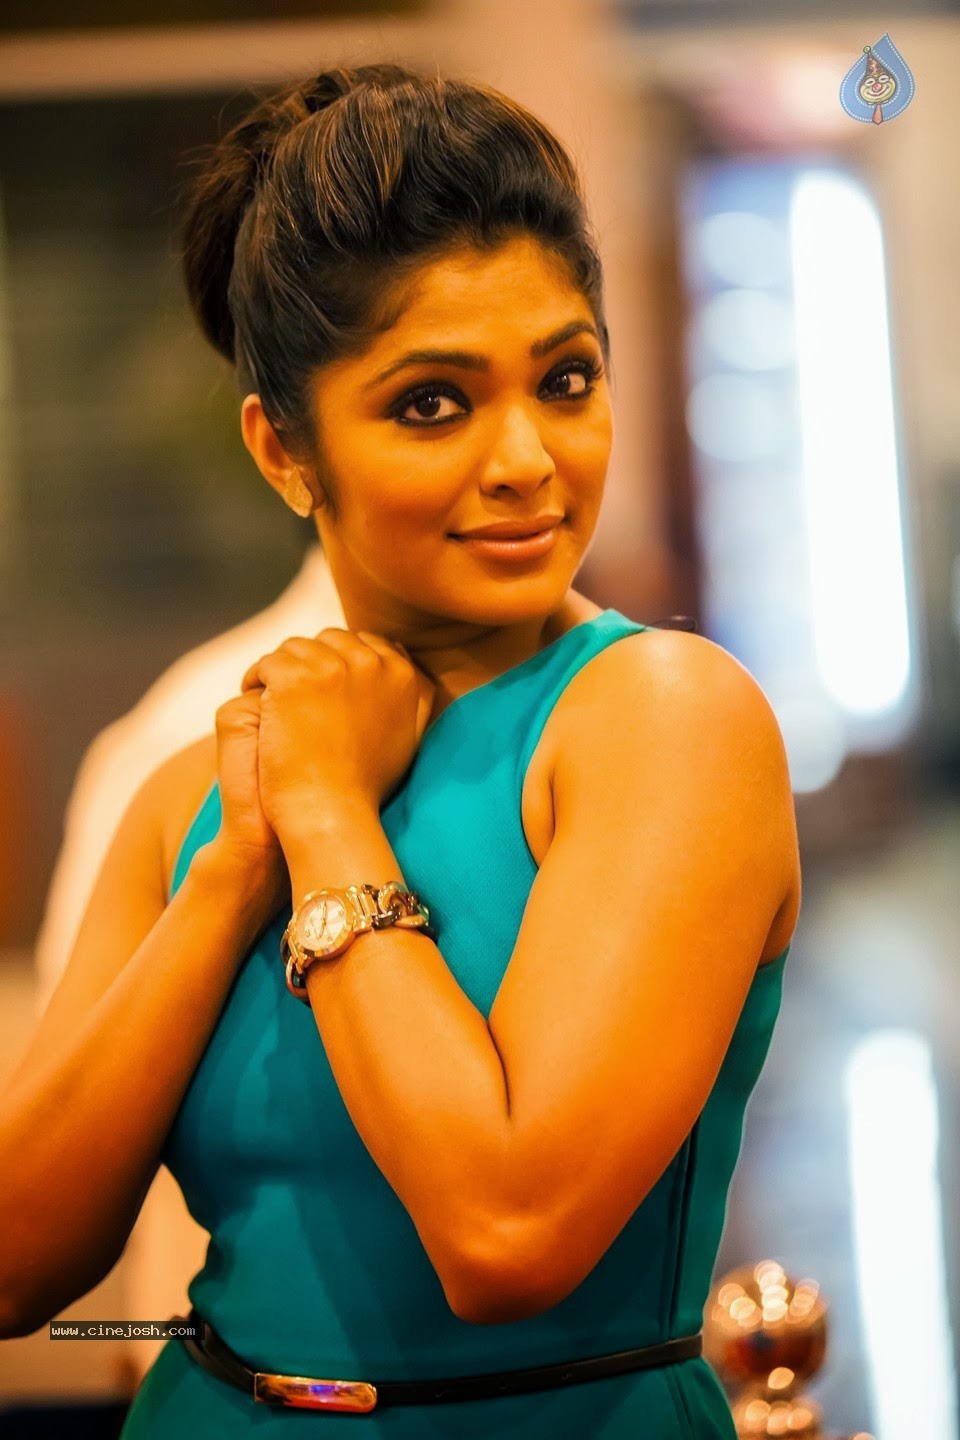 Rima Kallingal Photos Rima Kallingal Gallery Actress Rima Kallingal Kallingal Hot Photos Rima Kallingal 2015 Photos Hot Actress Rima Kallingal